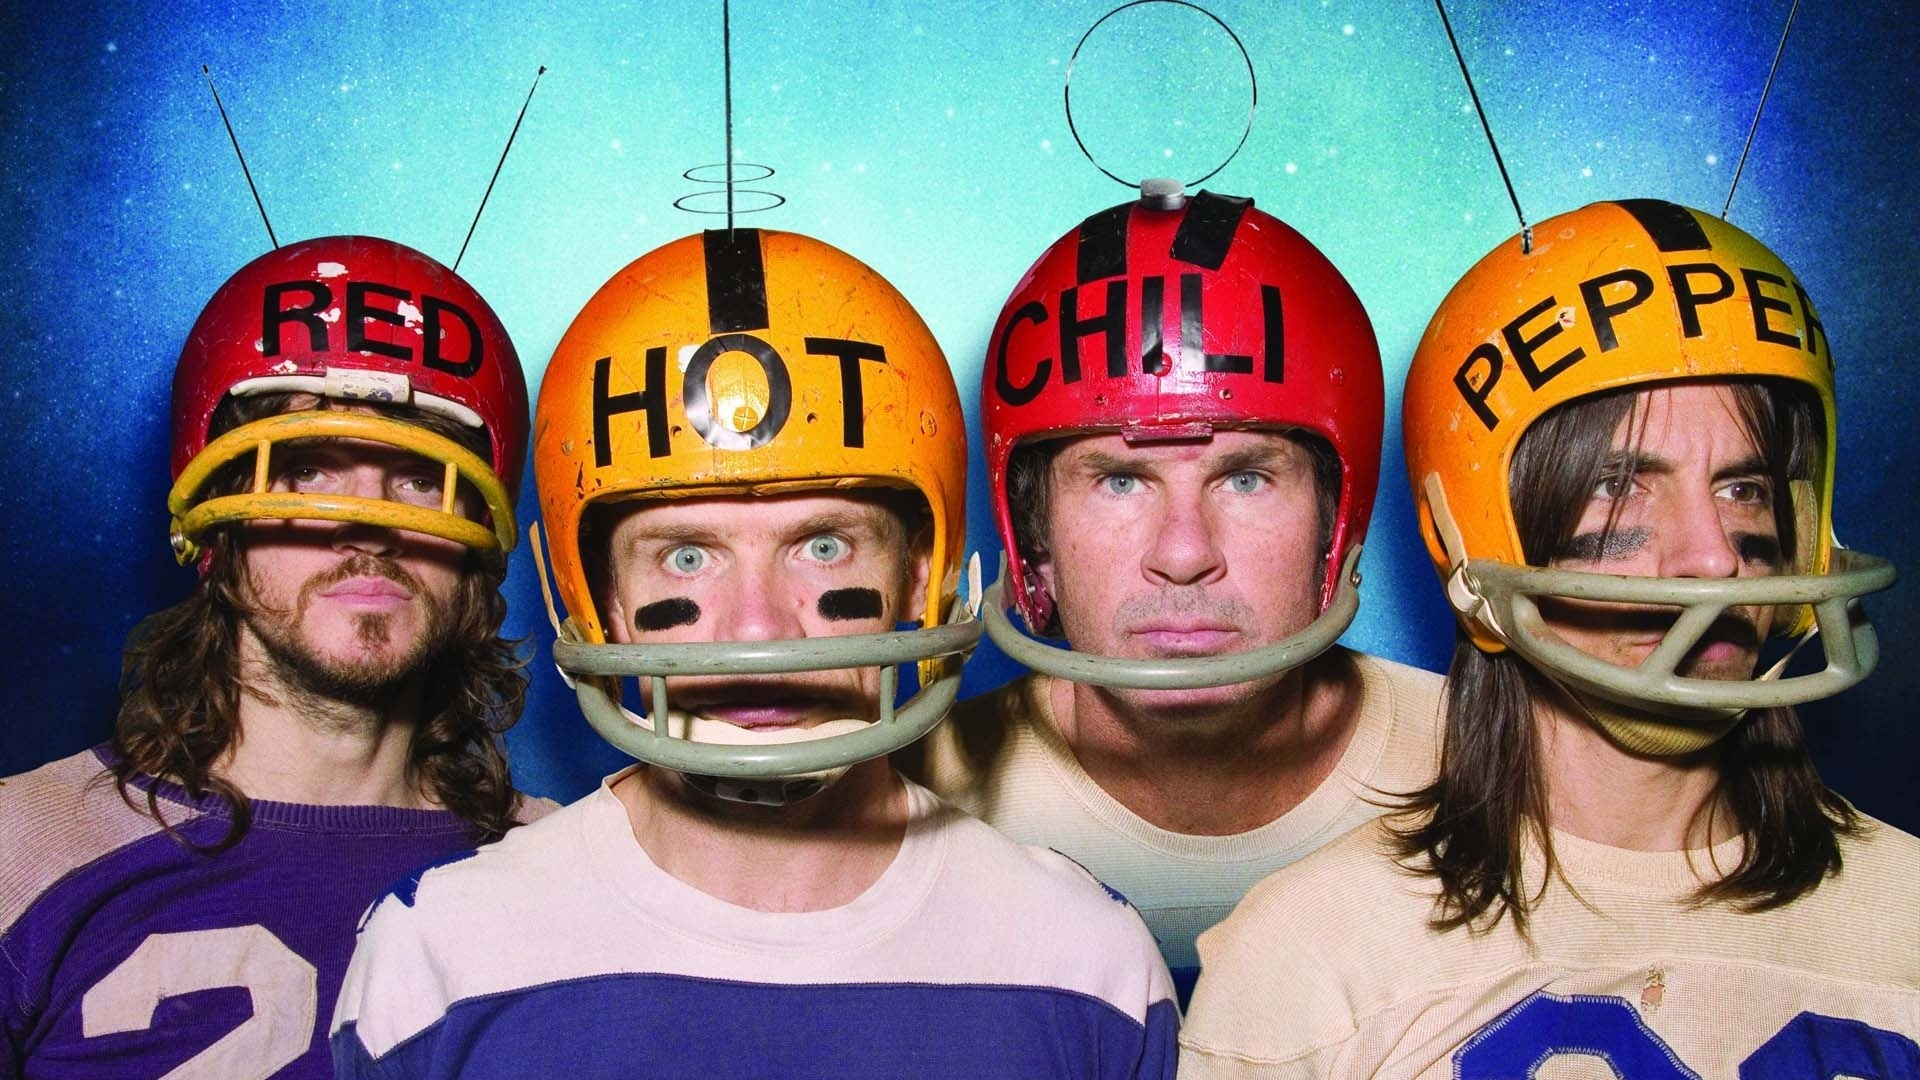 Red Hot Chili Peppers Wallpaper HD Images | Ten HD Wallpaper